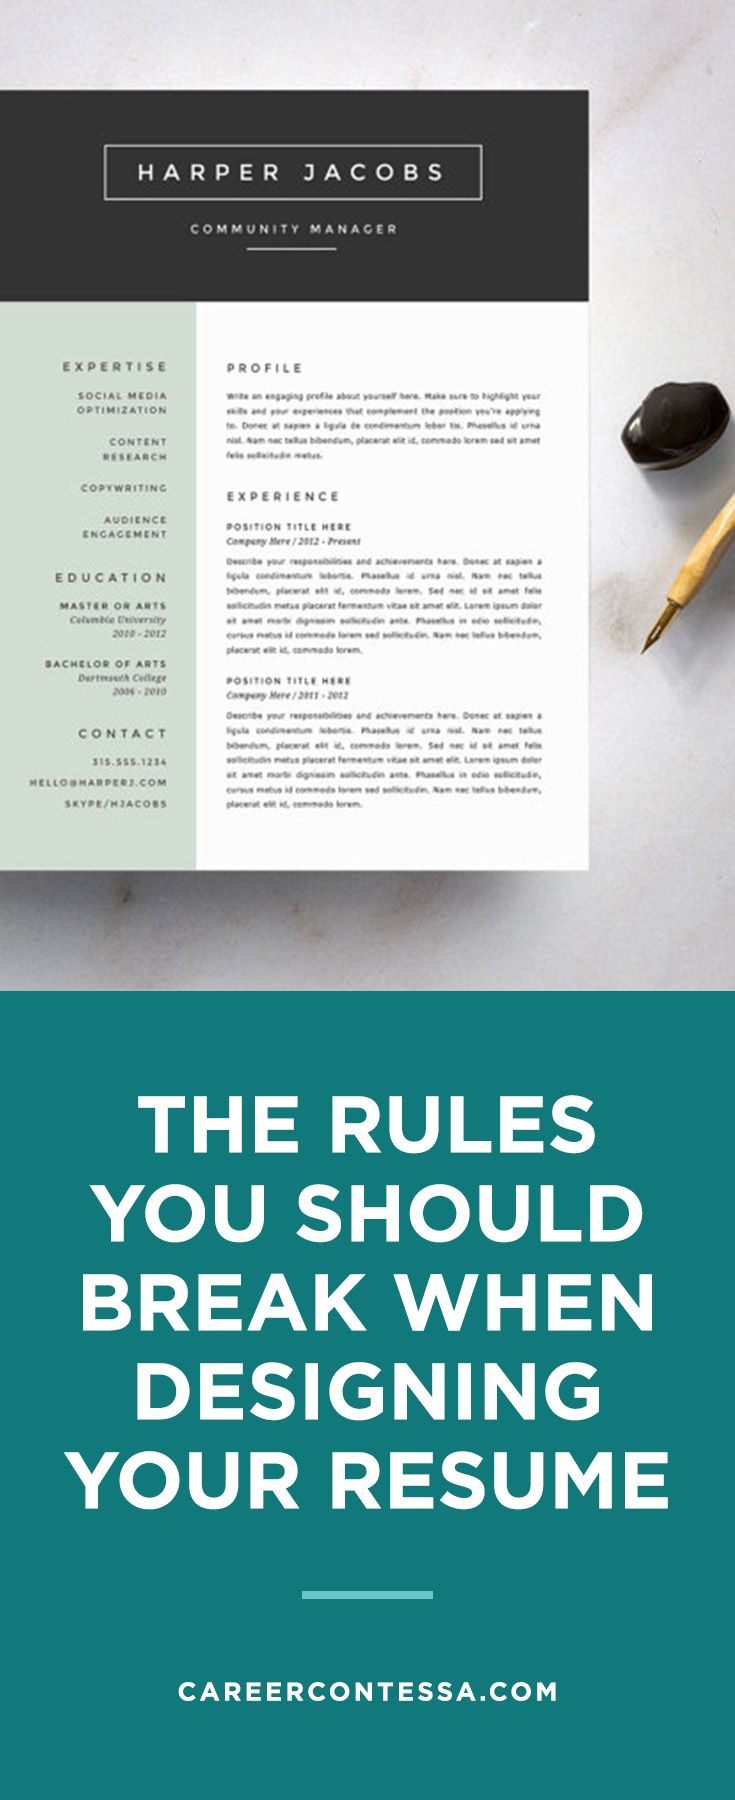 resume How Do You Make Your Resume Stand Out how to make your resume stand out by breaking a few rules advice career contessa